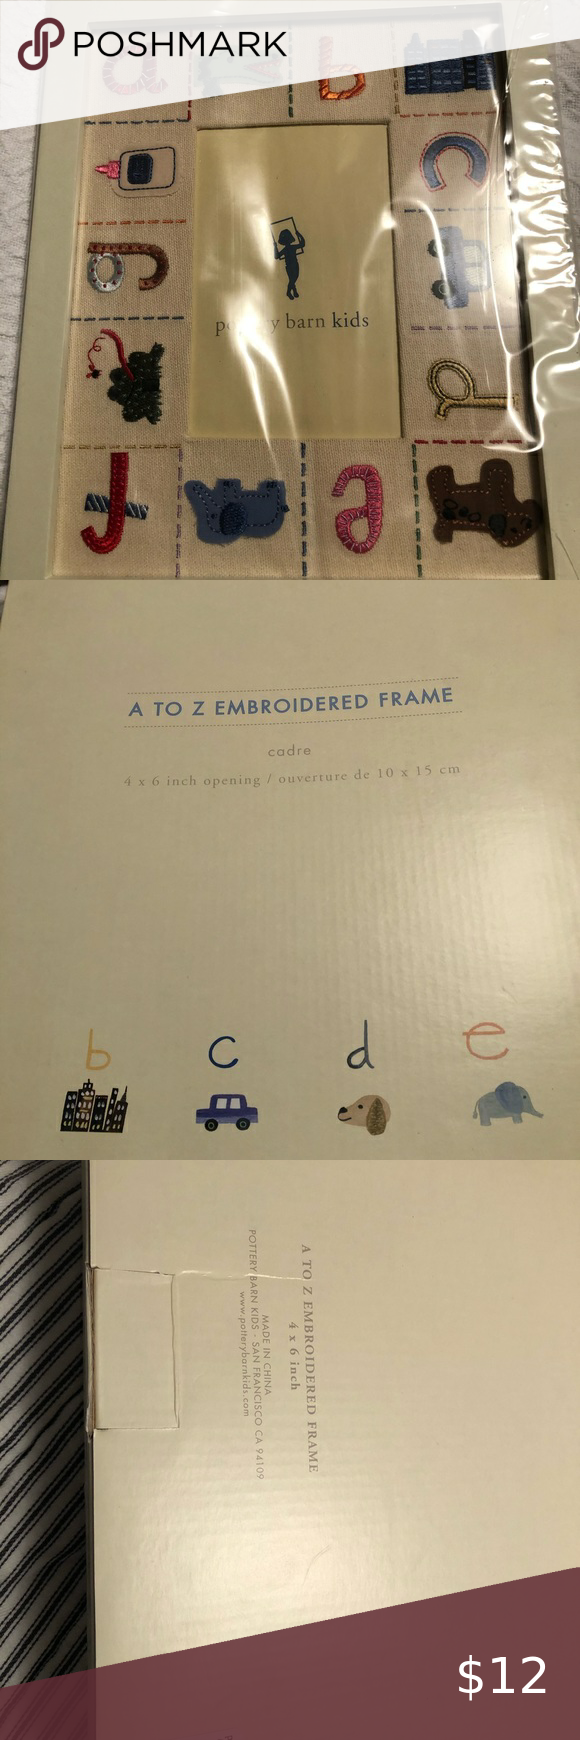 Embroidered Frame New picture frame from Pottery Barn Kids - A to Z embroidered frame, 4x6 opening Pottery Barn Kids Accents Picture Frames